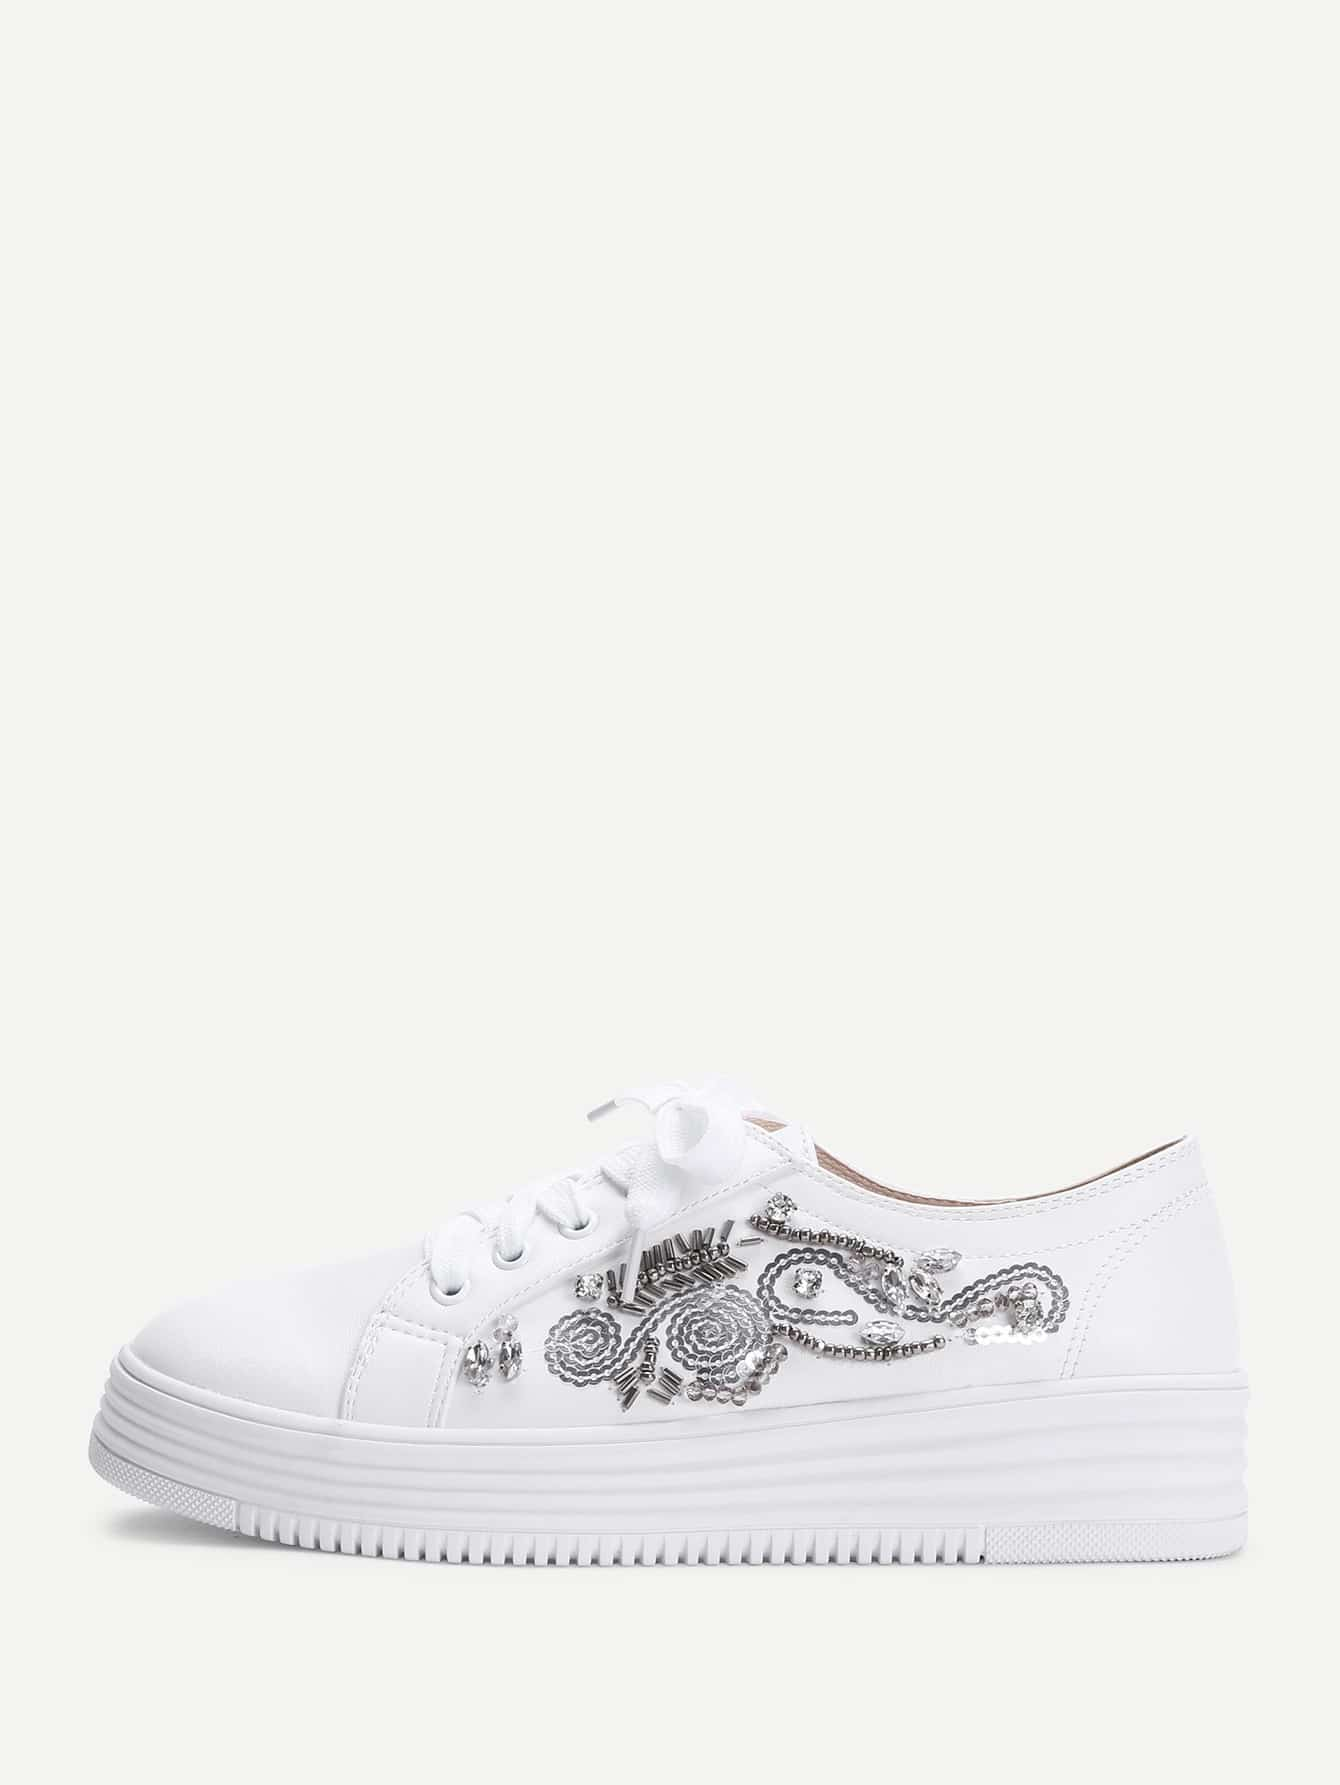 Beads & Crystal Design Lace Up Sneakers